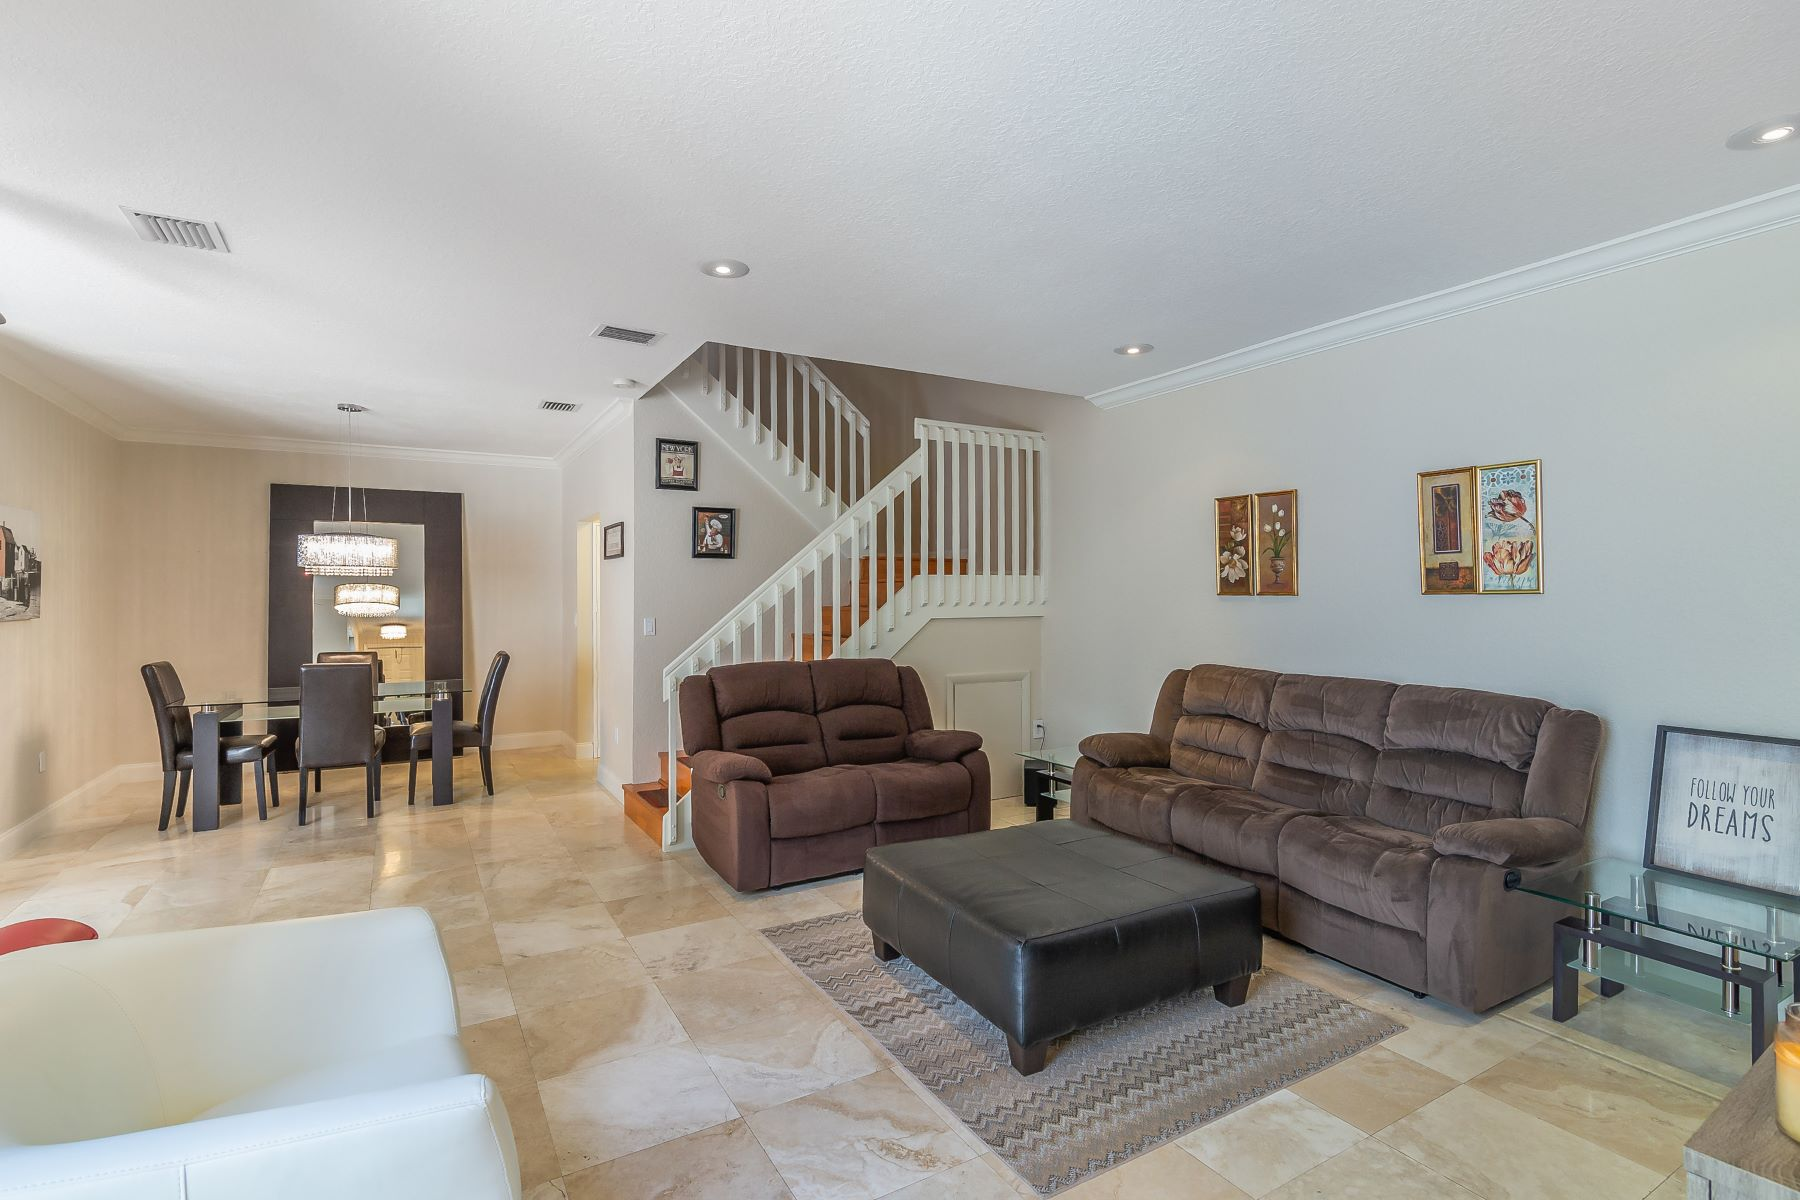 Townhouse for Sale at 1125 Buttonwood Ln 1125 Buttonwood Ln Hollywood, Florida 33019 United States